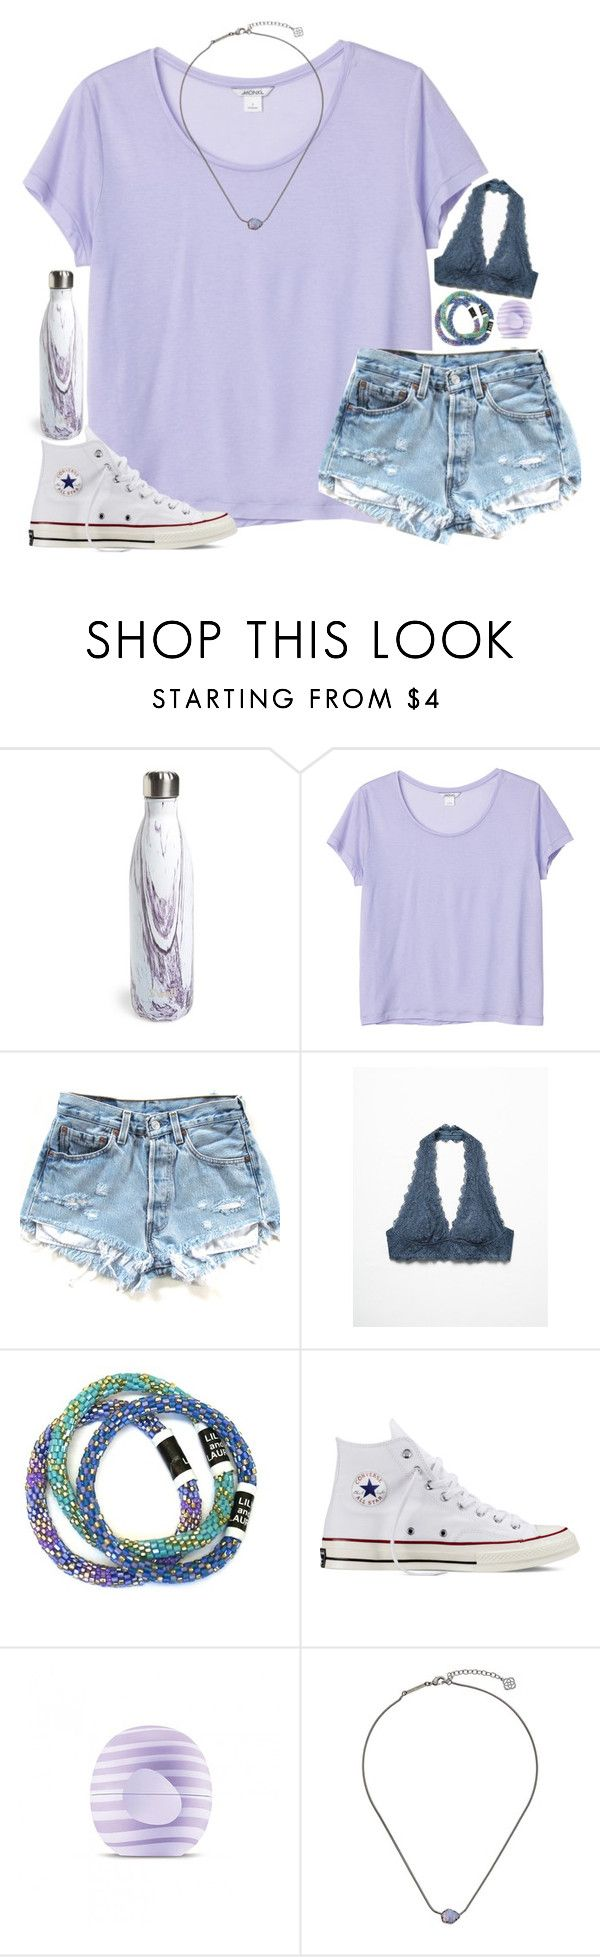 """""""converse match everything"""" by julesamber ❤ liked on Polyvore featuring S'well, Monki, Free People, Converse, Eos and Kendra Scott"""